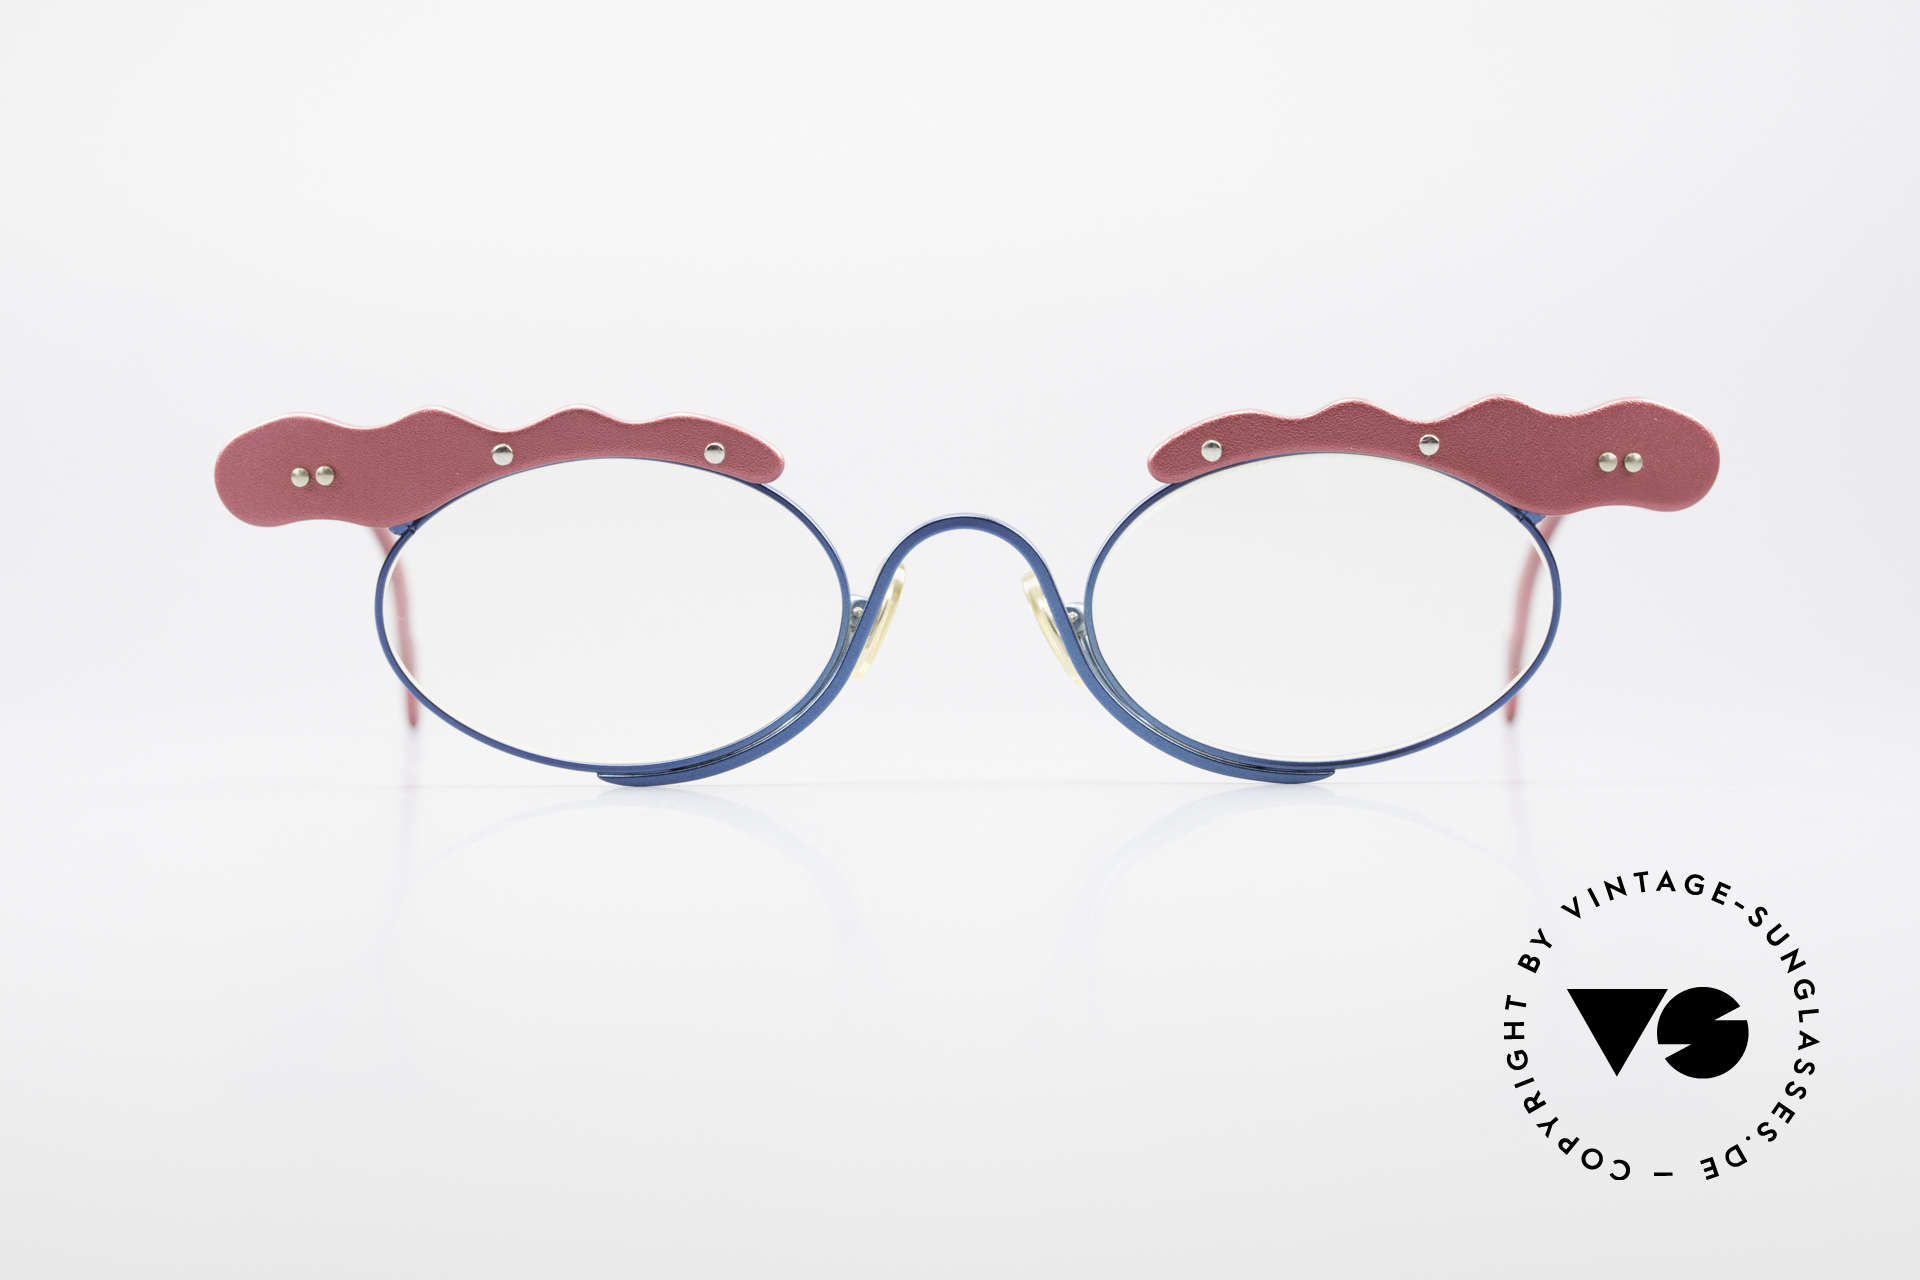 Theo Belgium These Crazy Vintage Eyeglasses, founded in 1989 as 'opposite pole' to the 'mainstream', Made for Women